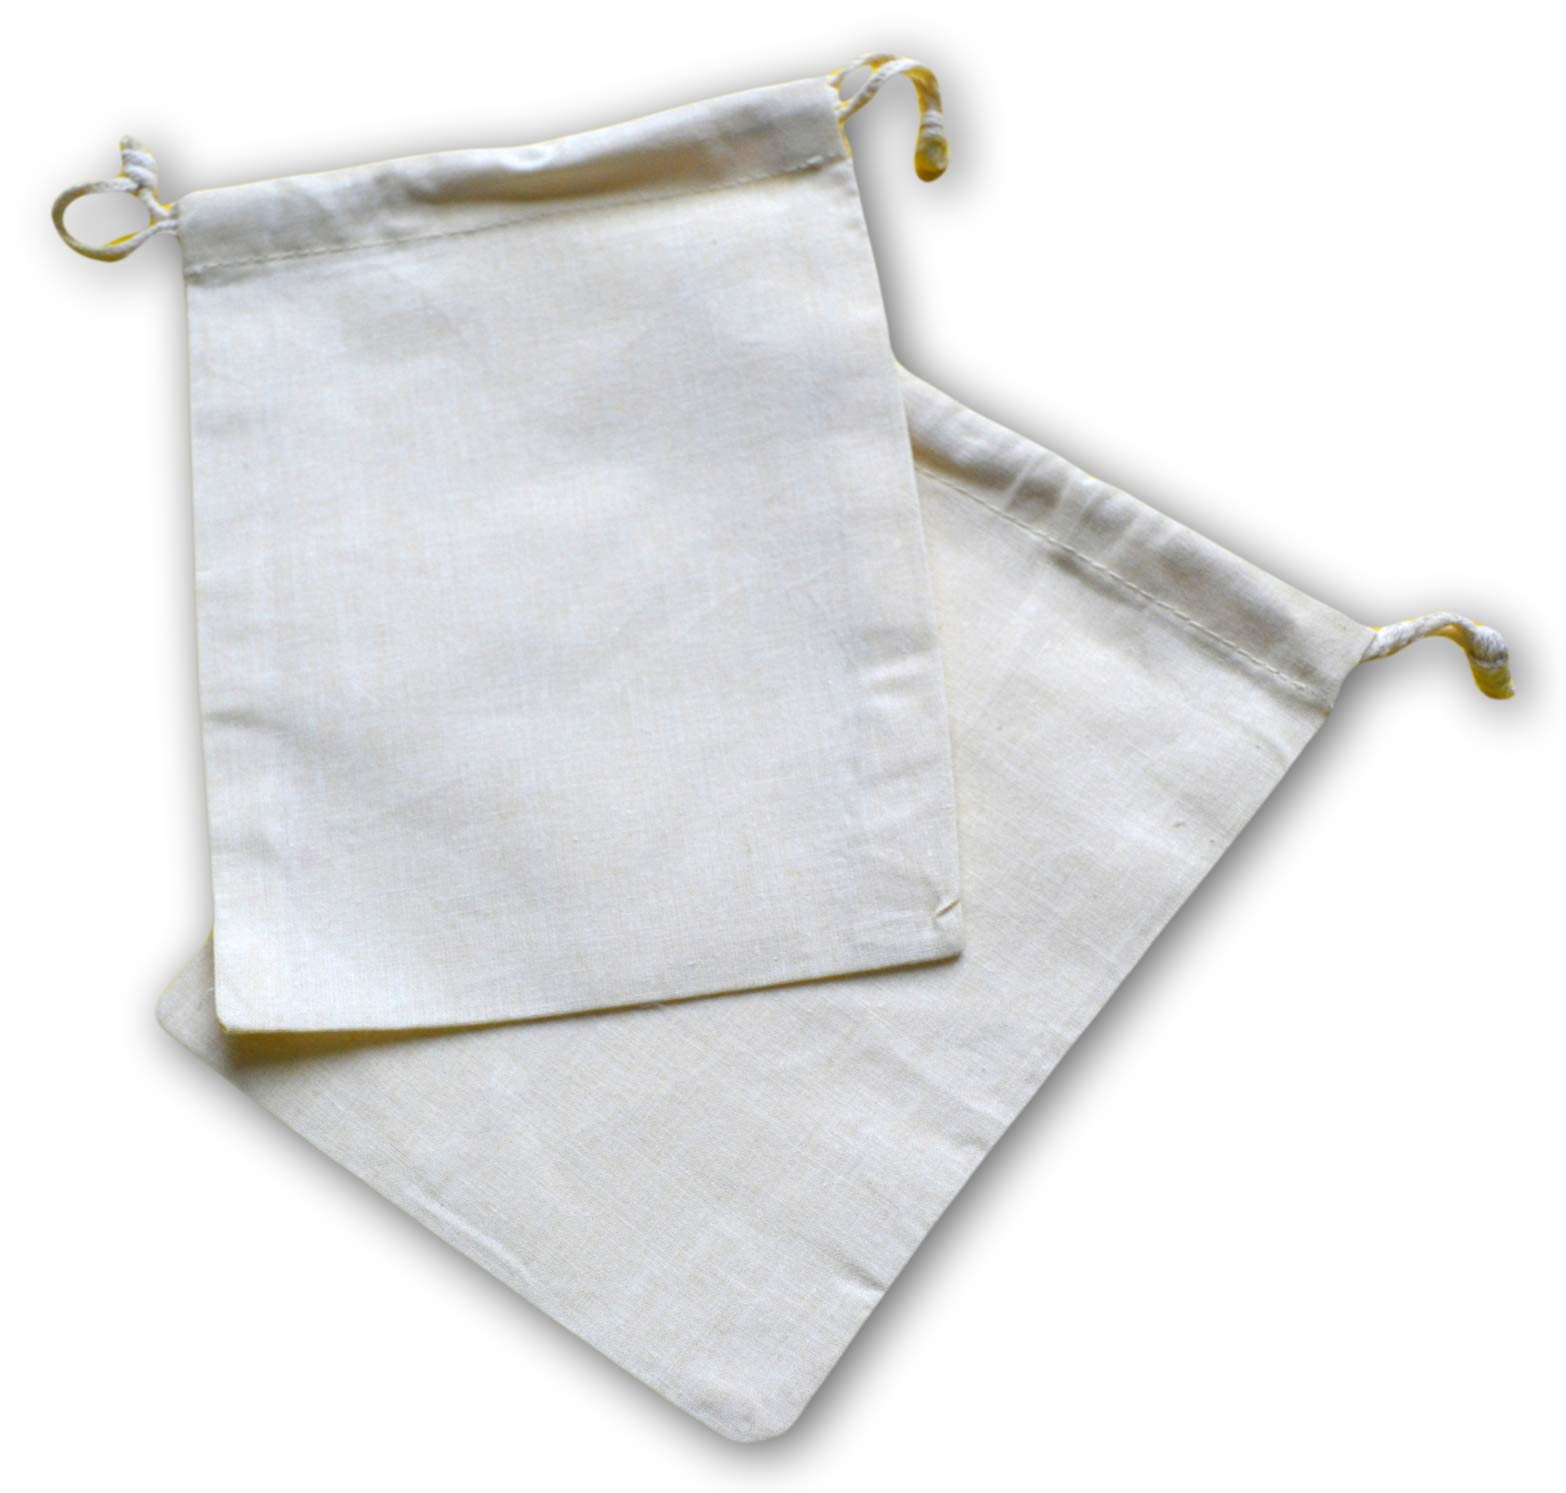 Reusable Eco Friendly 100% Cotton Double Drawstring Muslin Bags Bags 3x4 inches Premium Quality-100 Count Pack (Natural Color)